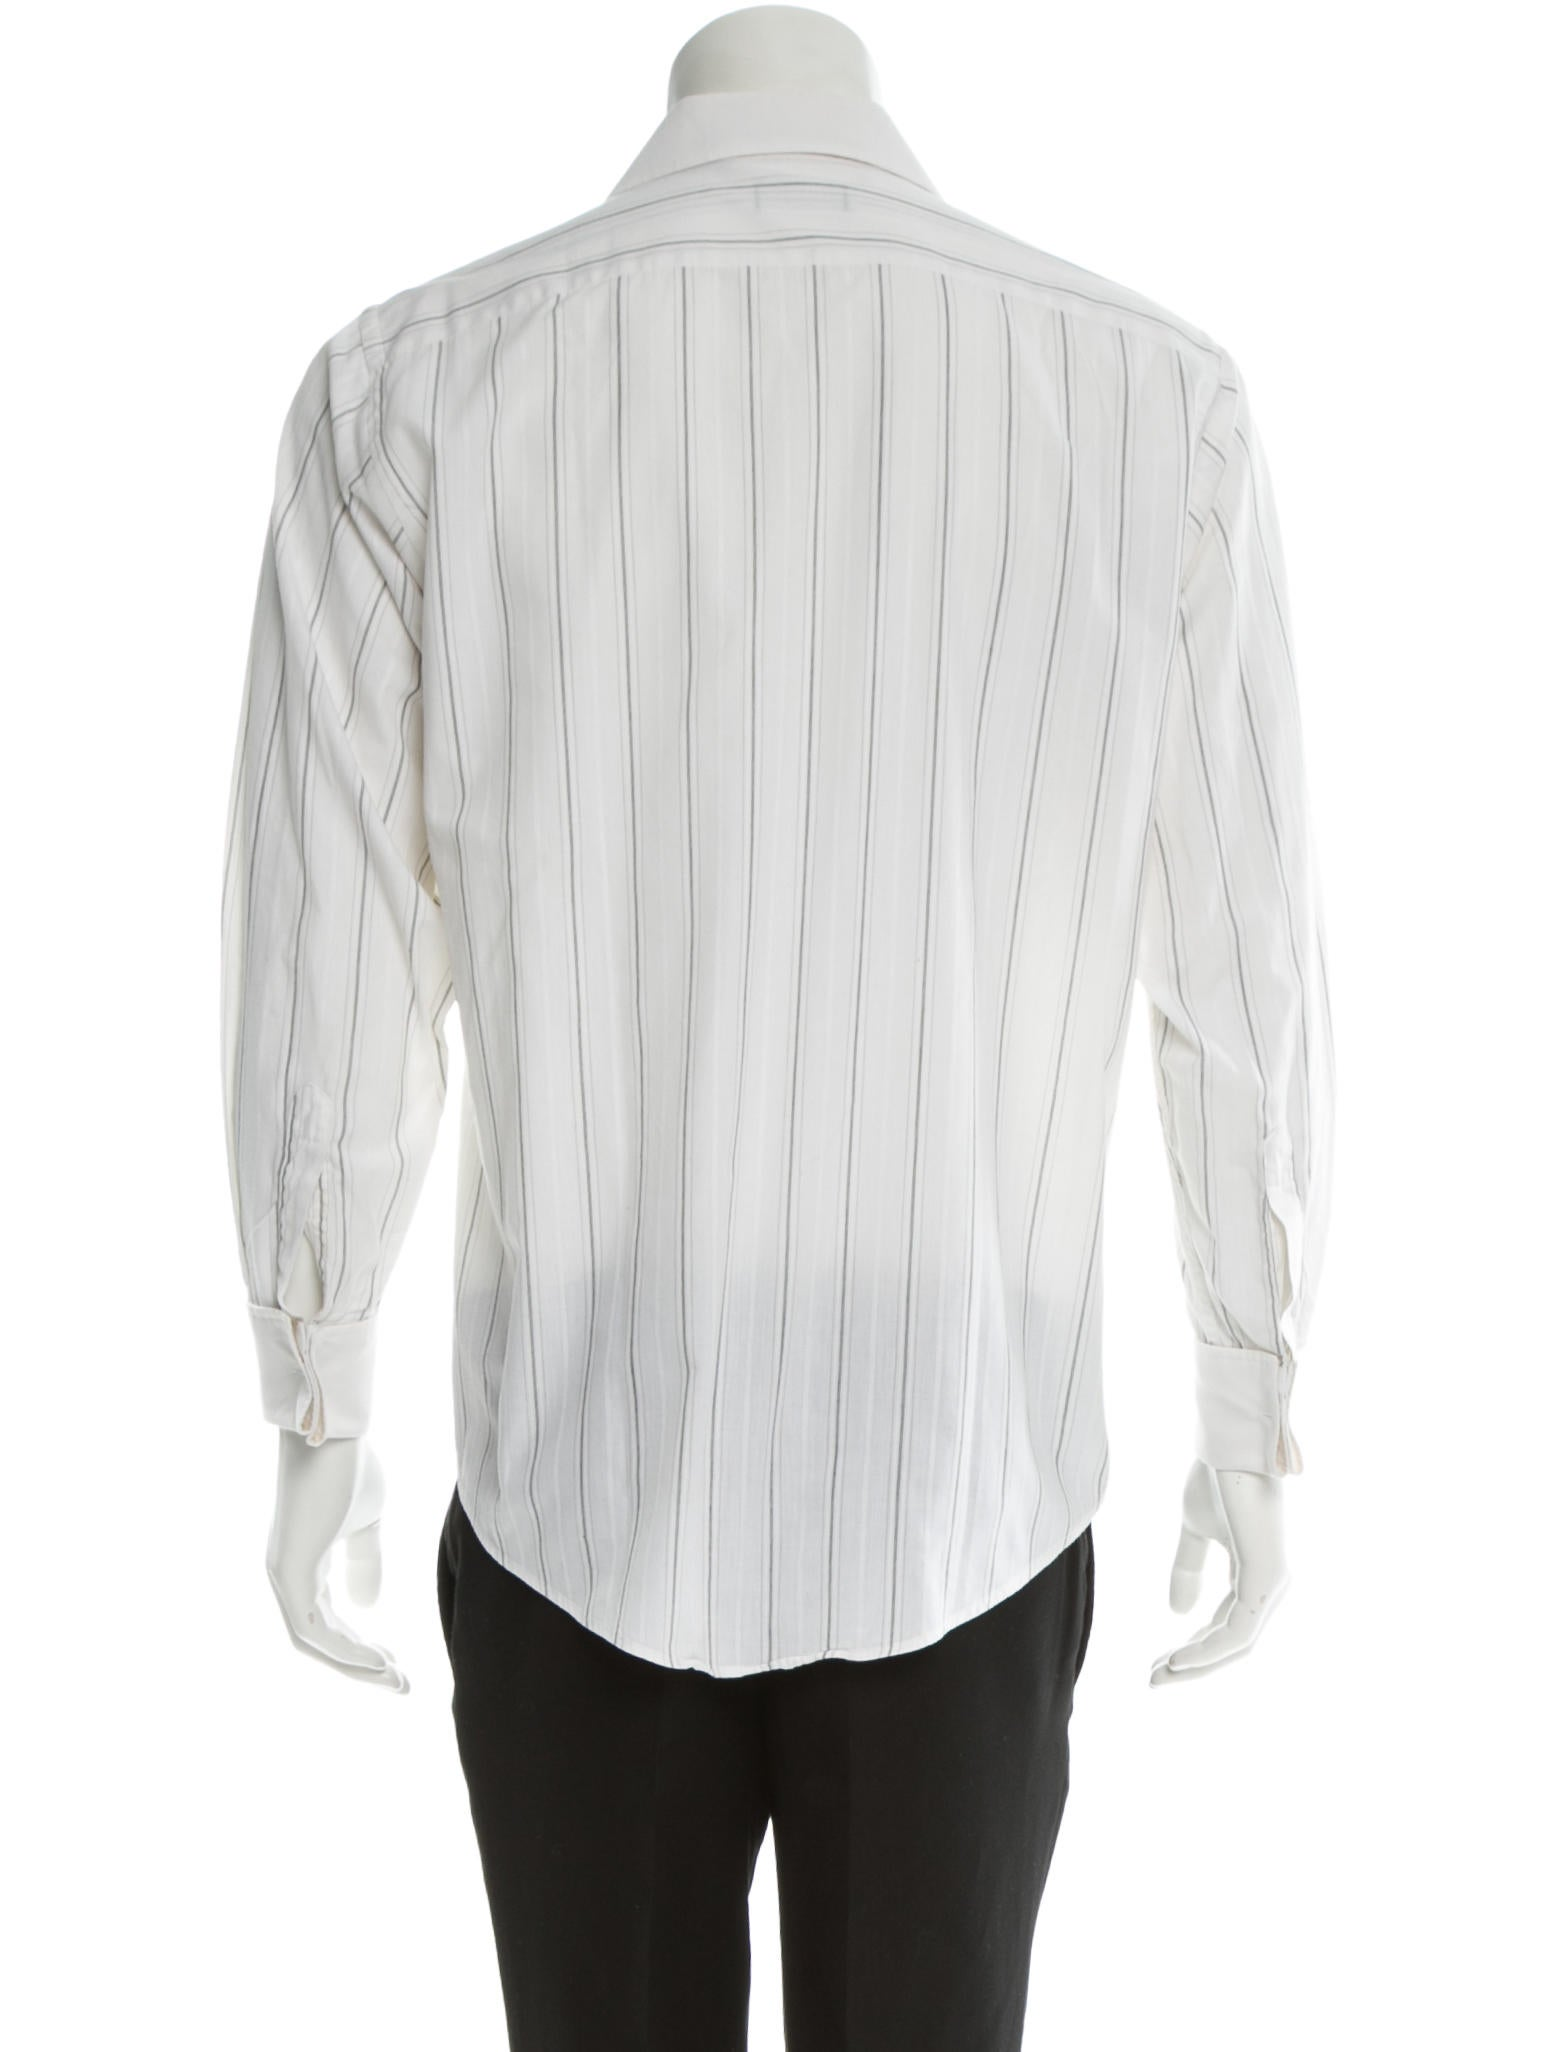 Christian dior shirt clothing chr32800 the realreal for Christian dior button up shirt